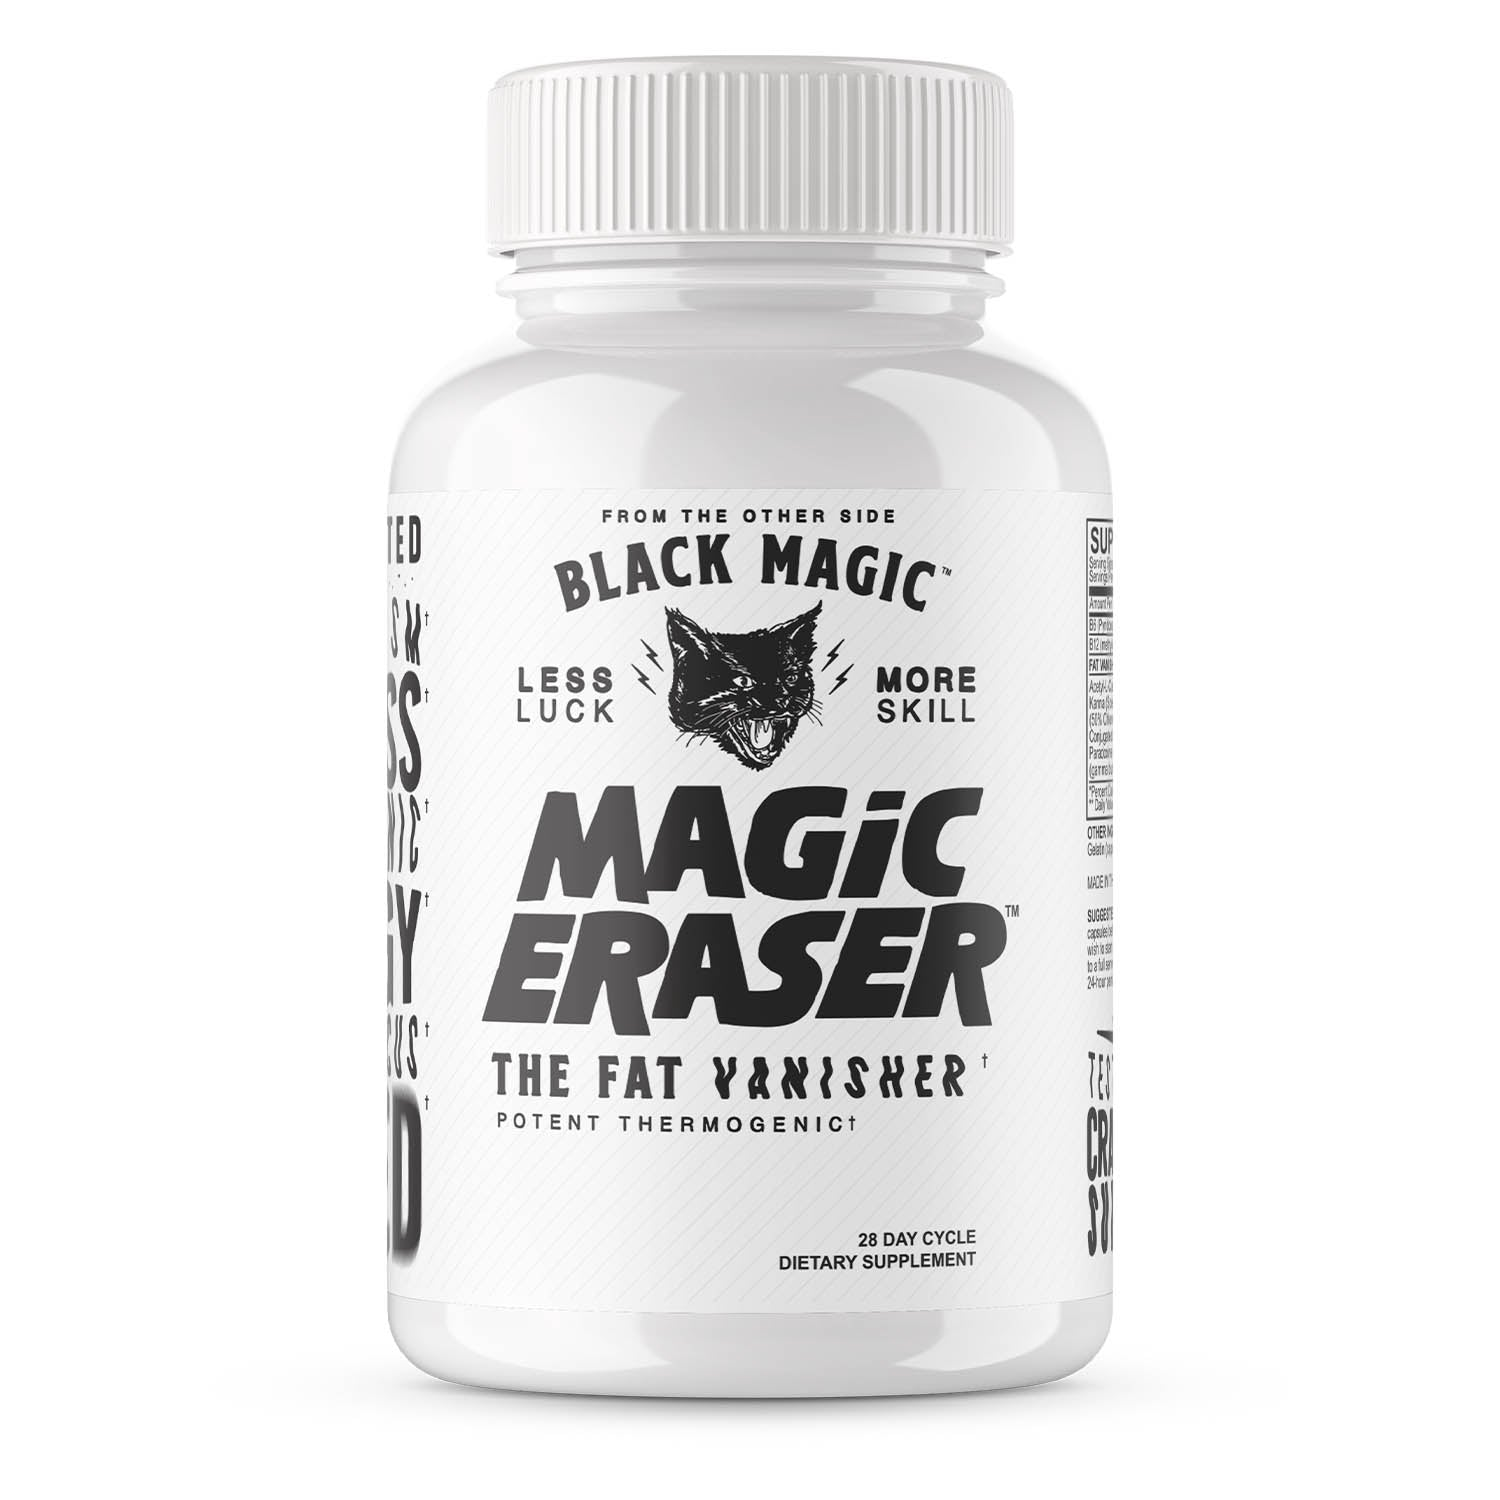 Magic Eraser Potent Thermogenic